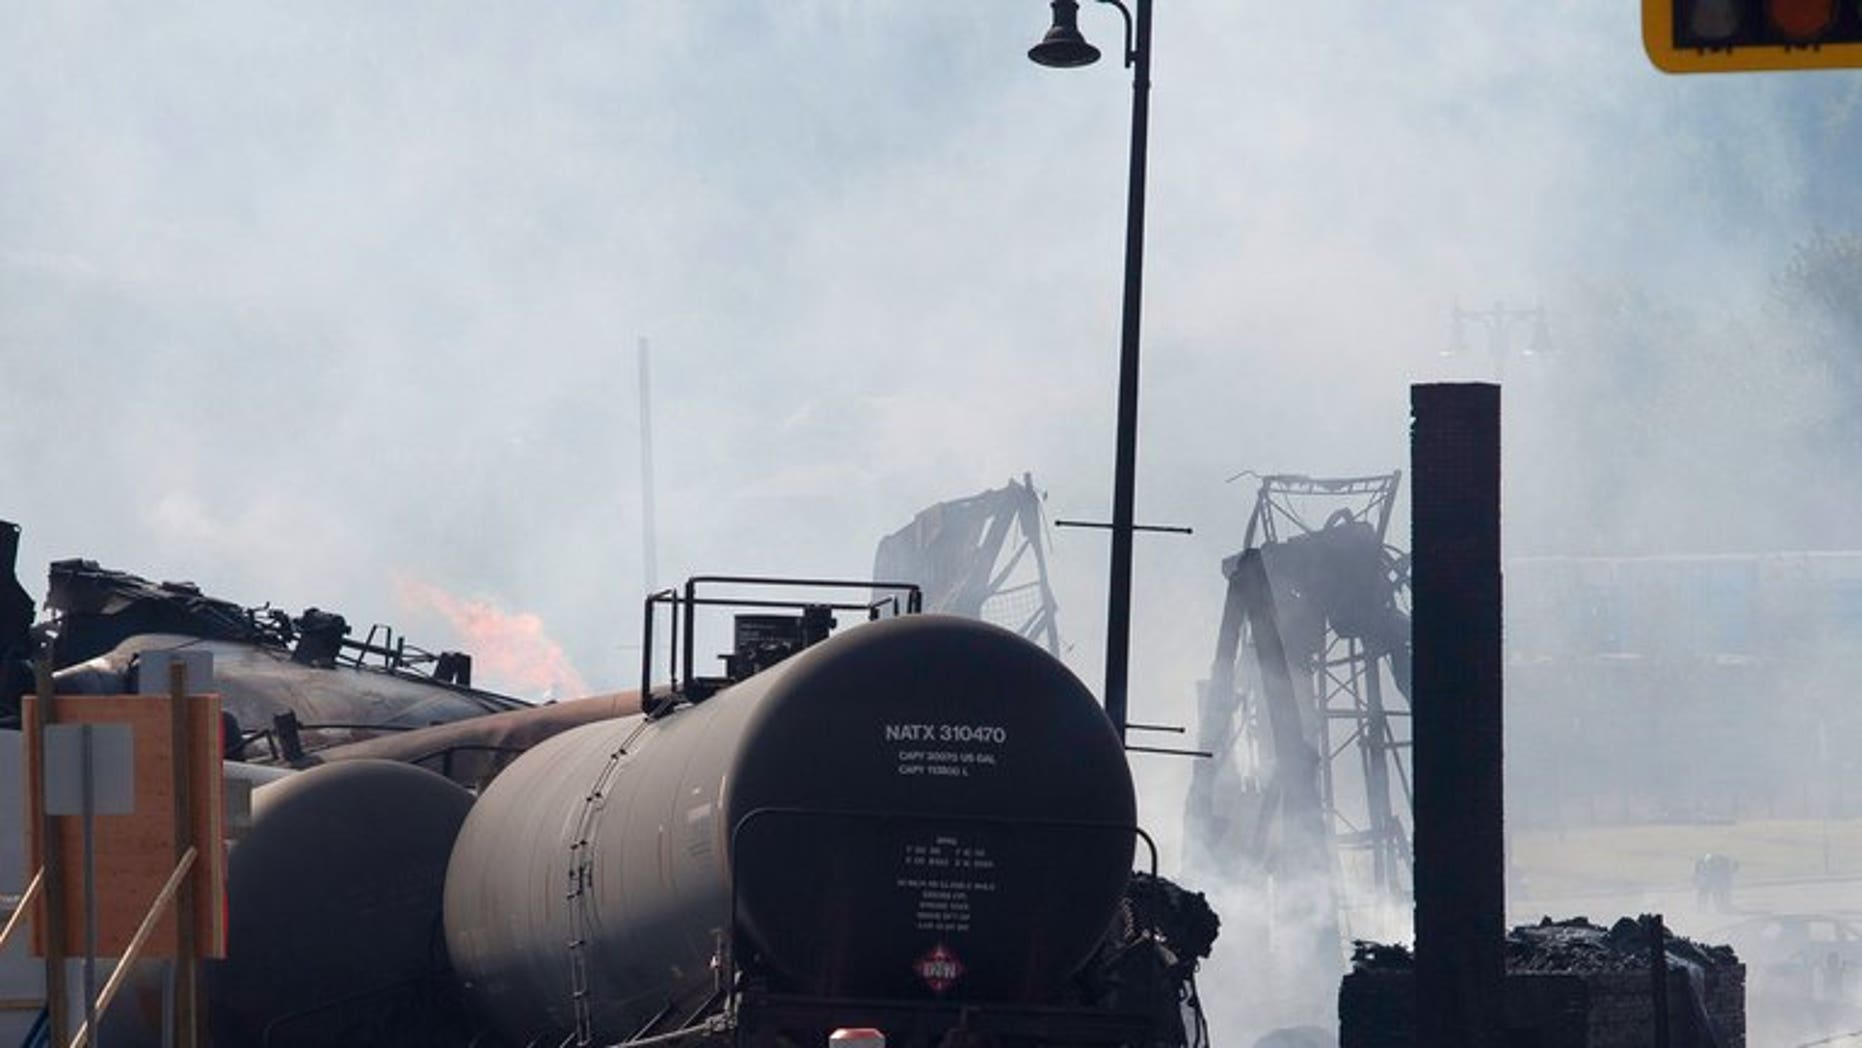 Wreckage burns on July 7, 2013 after a freight train loaded with oil derailed July 6 in Lac-Megantic in Canada's Quebec province. Canadian Pacific Railway will appeal a government order to pay for the clean-up of a deadly train derailment in Canada's Quebec province in July, a spokesman said Thursday.